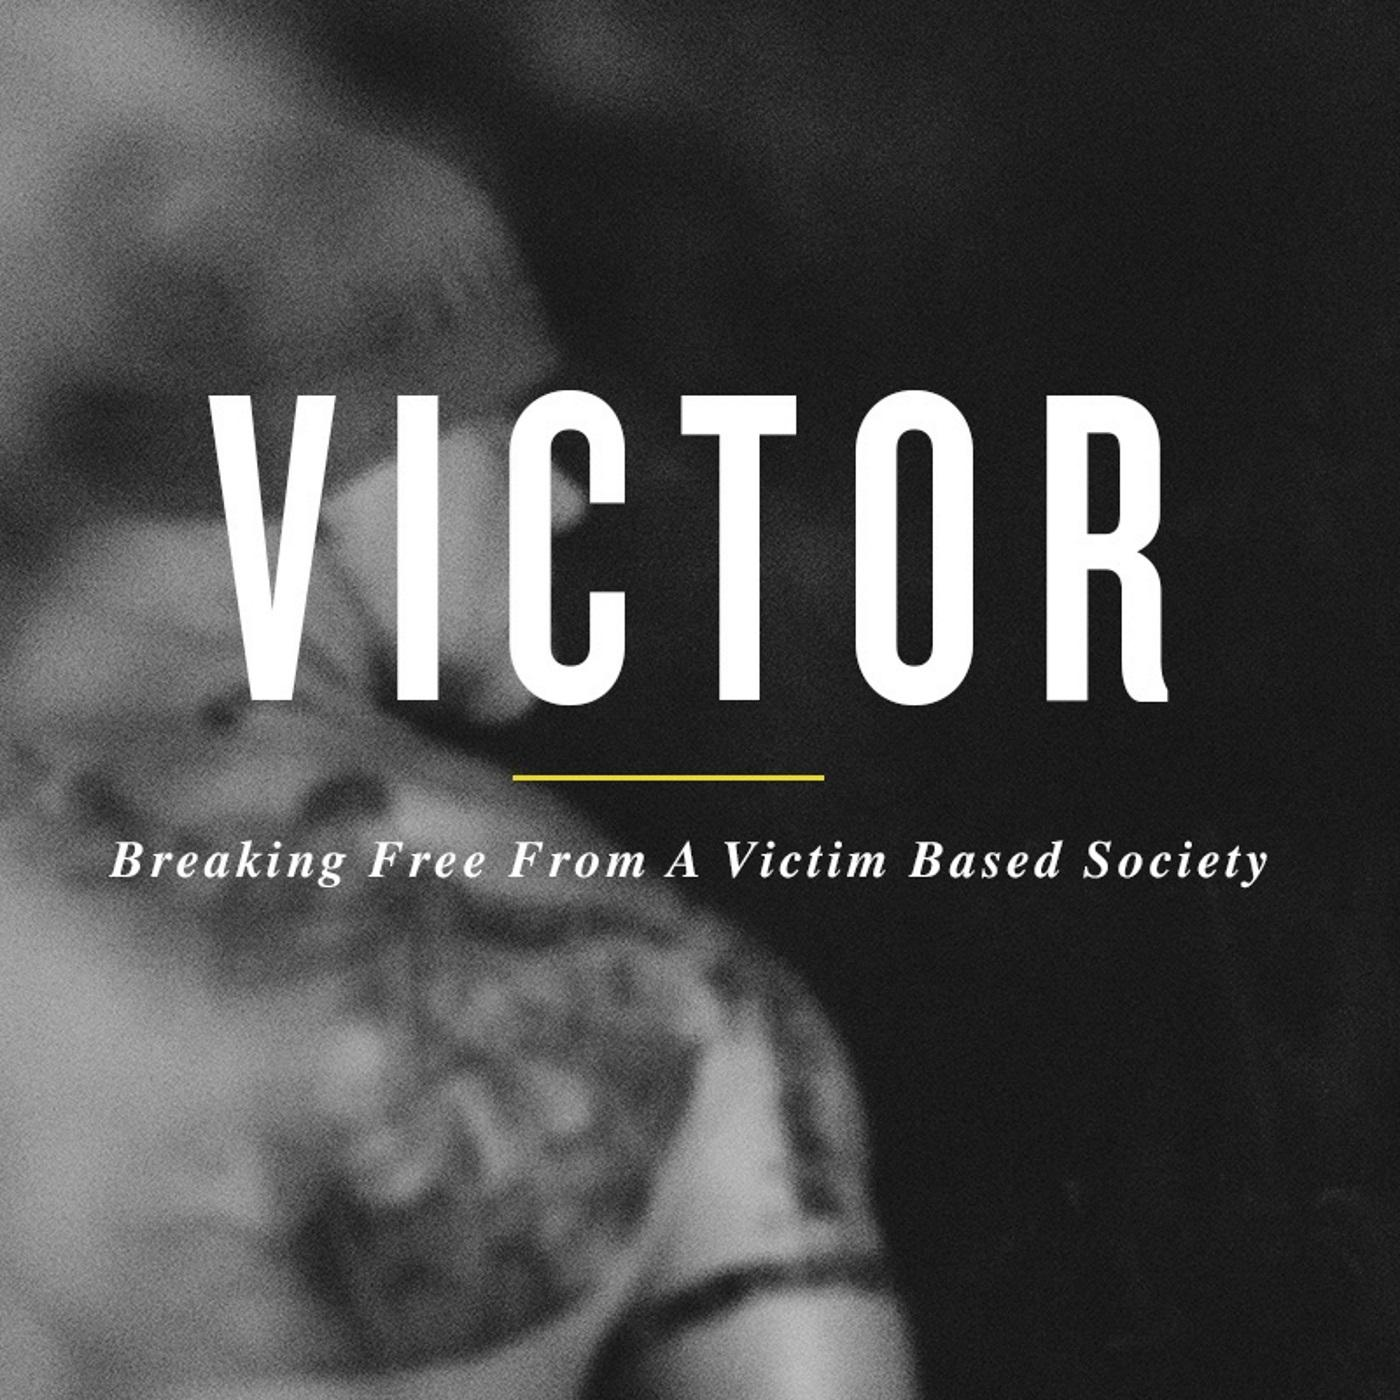 Victor - Breaking Free From a Victim Based Society | Listen